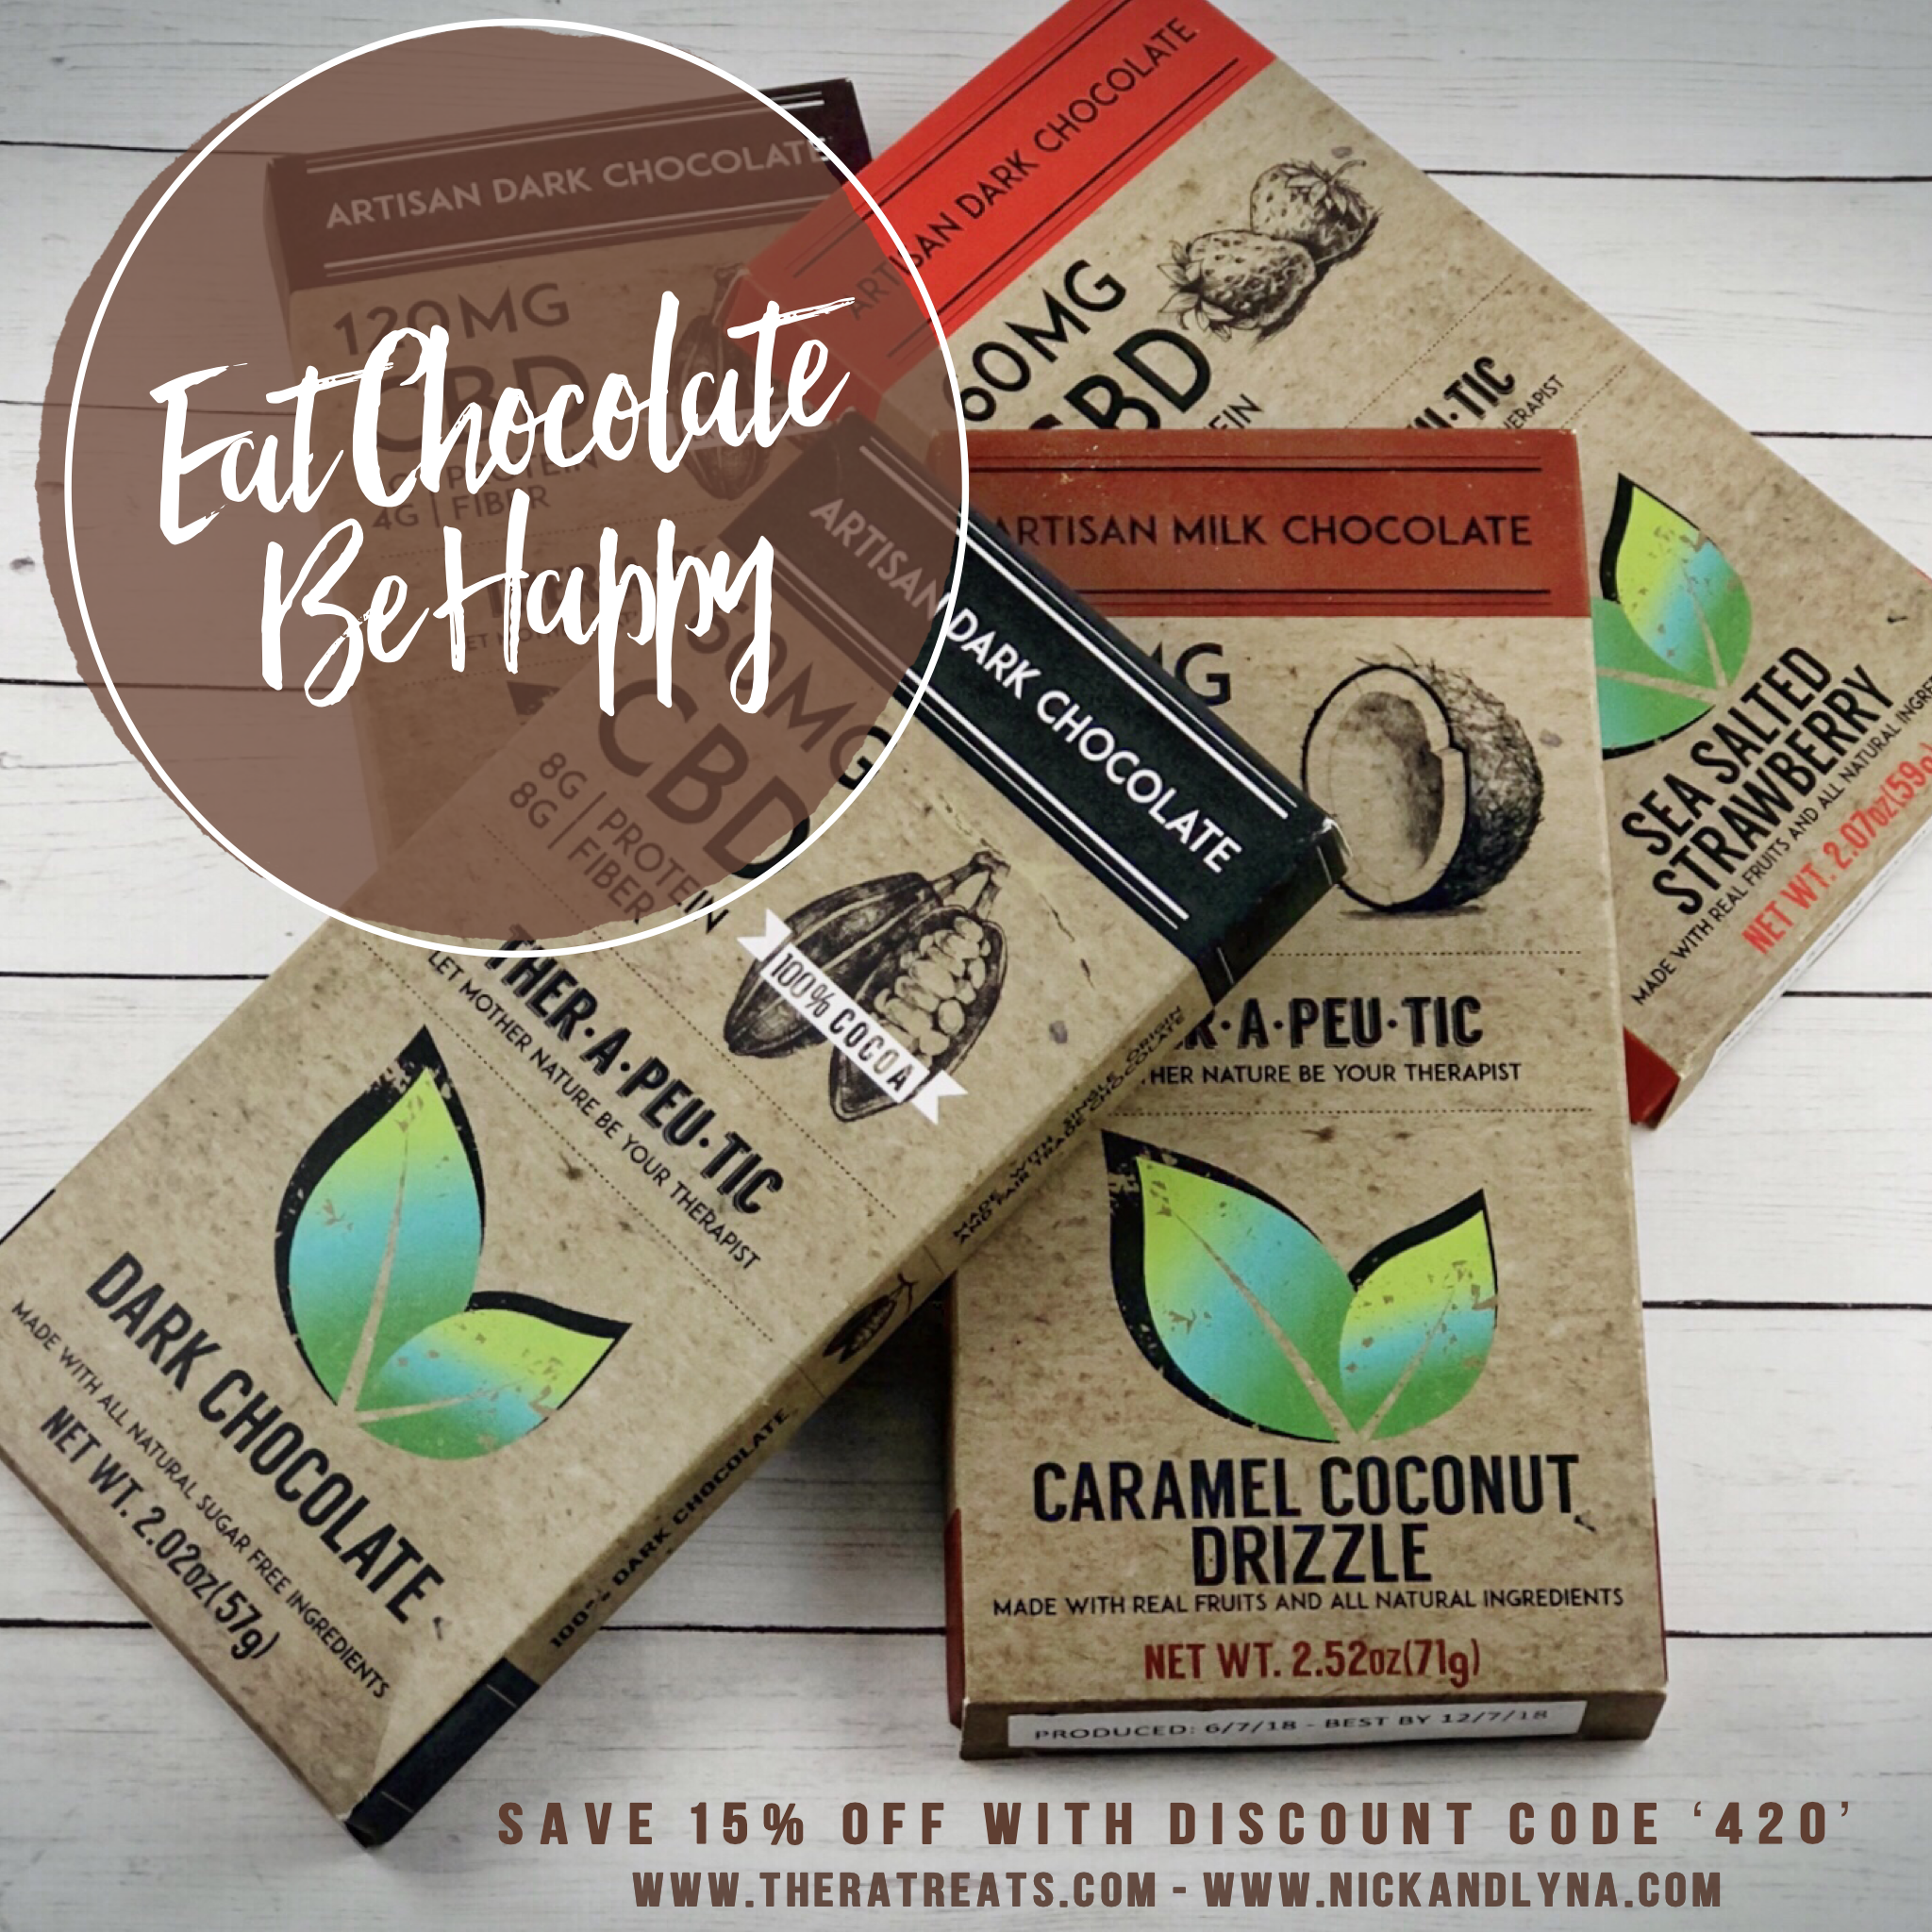 Therapeutic Treats - Chocolate lovers rejoice and enjoy the benefits of cocoa and CBD with Therapeutic Treat's and their artisan CBD infused chocolates. Made with all natural, non gmo, certified organic & gluten-free ingredients, Therapeutic Treat's are perfect anytime you need relief from pain, stress, inflammation, anxiety, muscle spasms, or even your sweet tooth! Choose from an amazing selection like Caramel Coconut Drizzle, Dark Chocolate, and our personal favorite the Sea Salt Strawberry with dark chocolate starting at 15 mg's of CBD per serving. But don't just take our word, treat yourself!Learn more TheraTreats.com